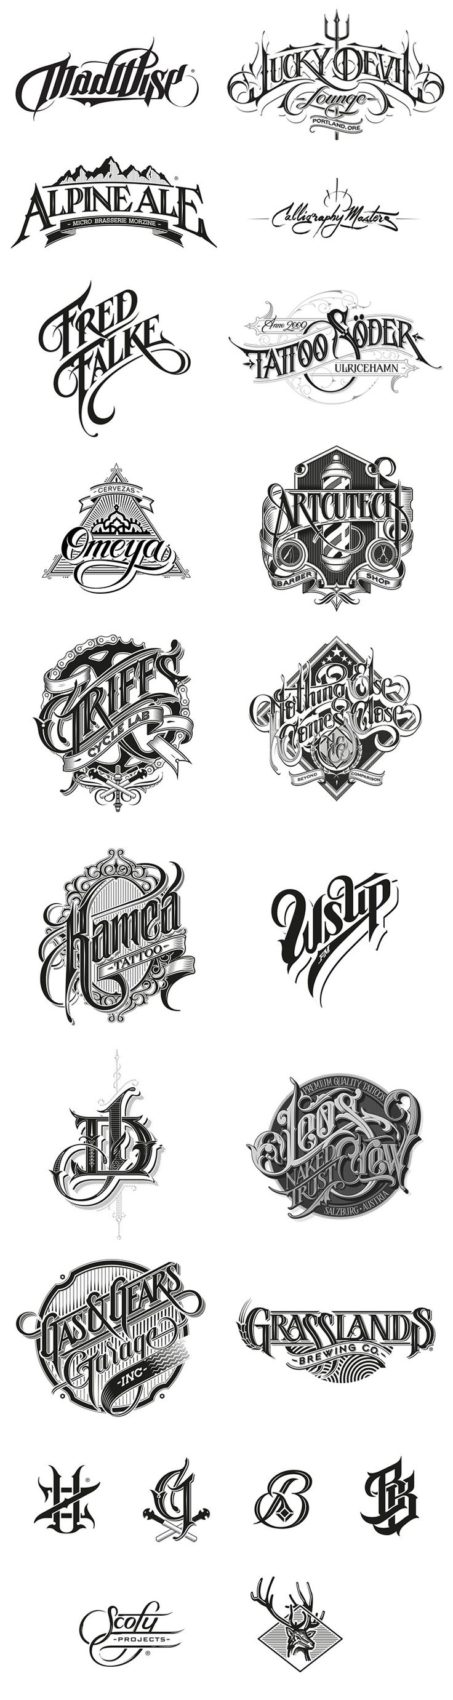 Awesome Lettering Tattoo design Awesome Lettering font design for Your Own Tattoo